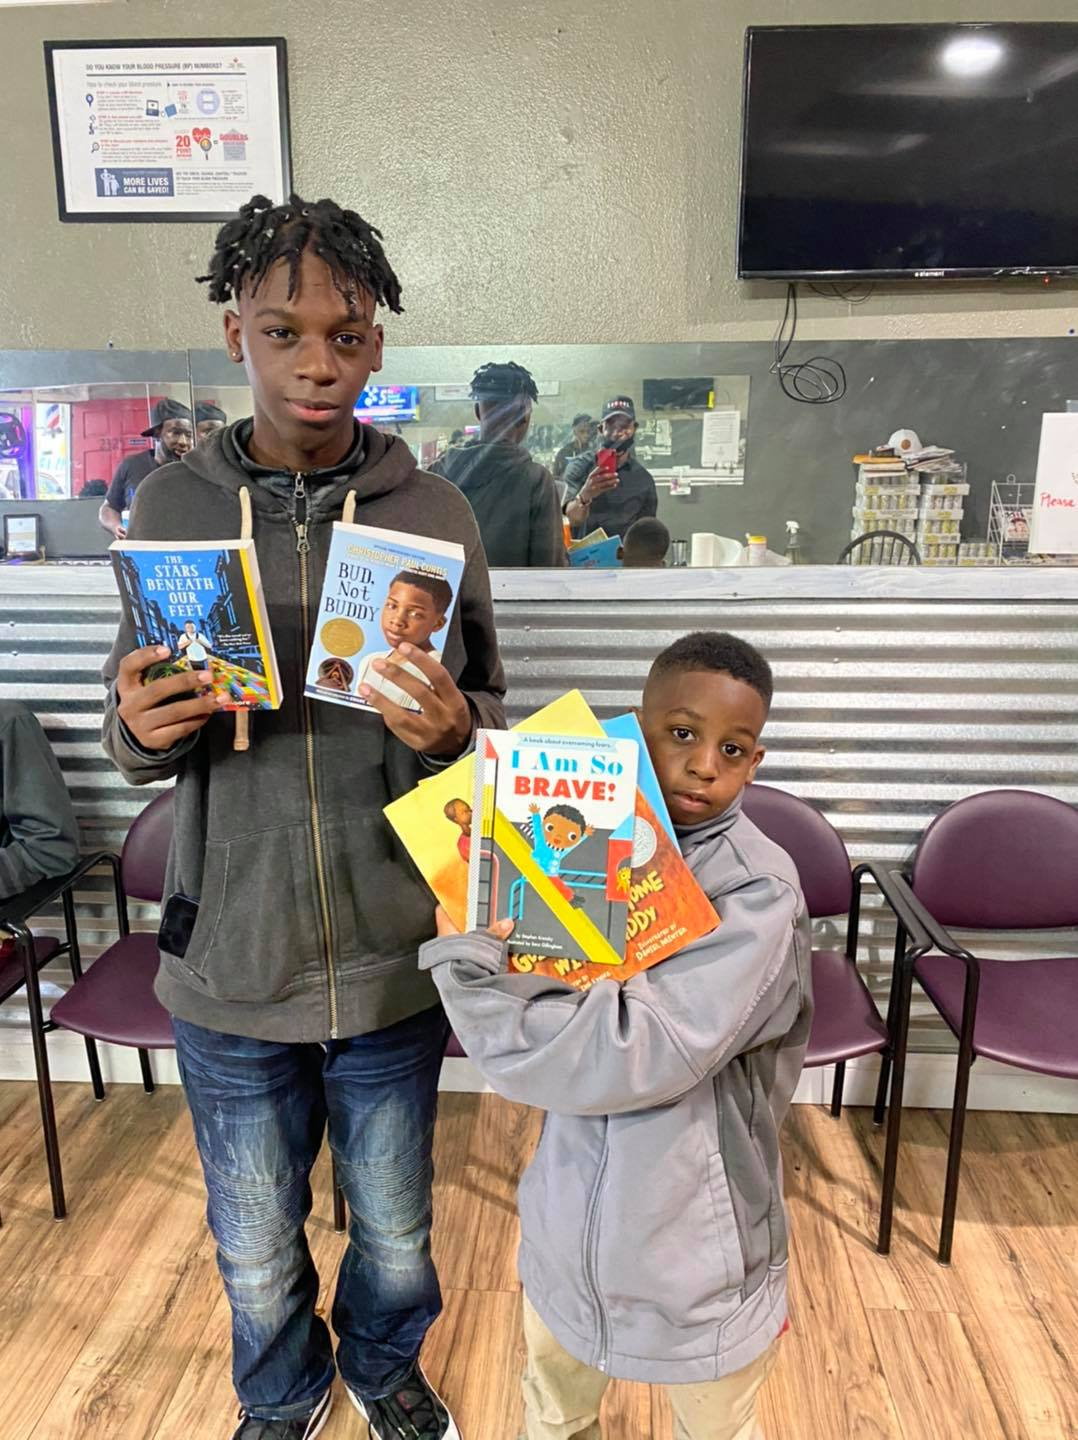 Two young boys holding books up to the camera